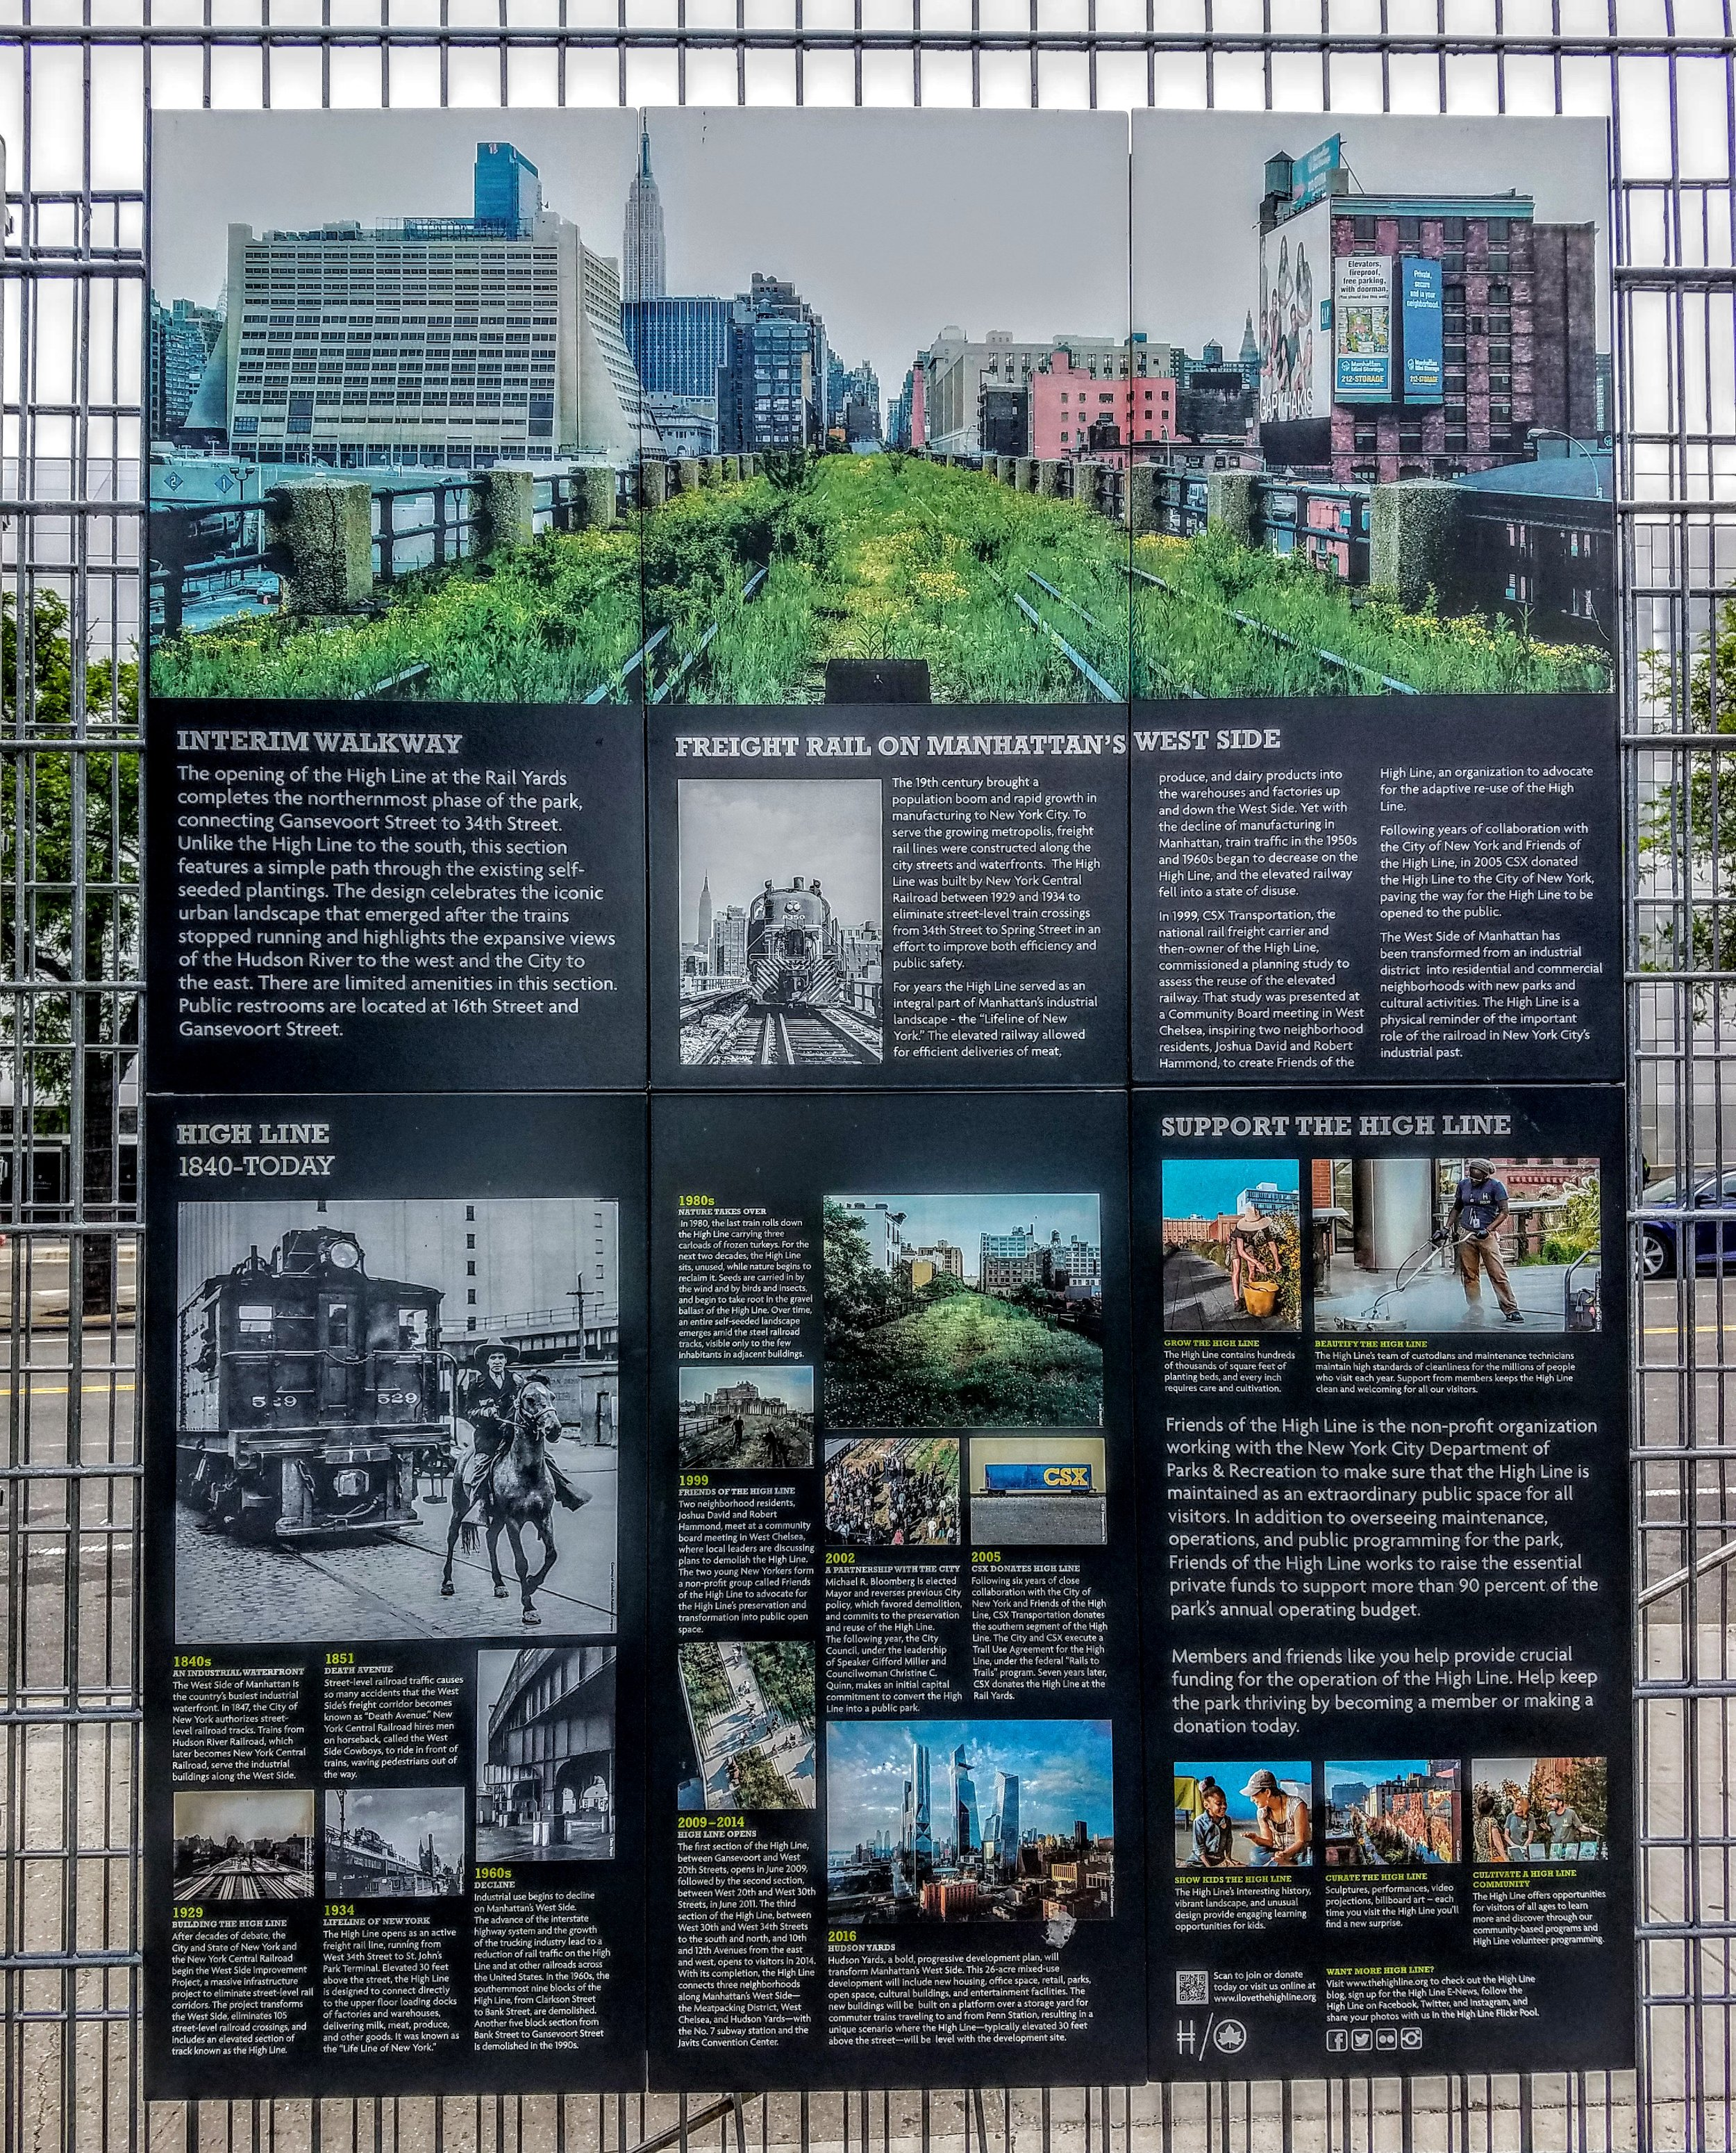 A little info on the High Line and its origins